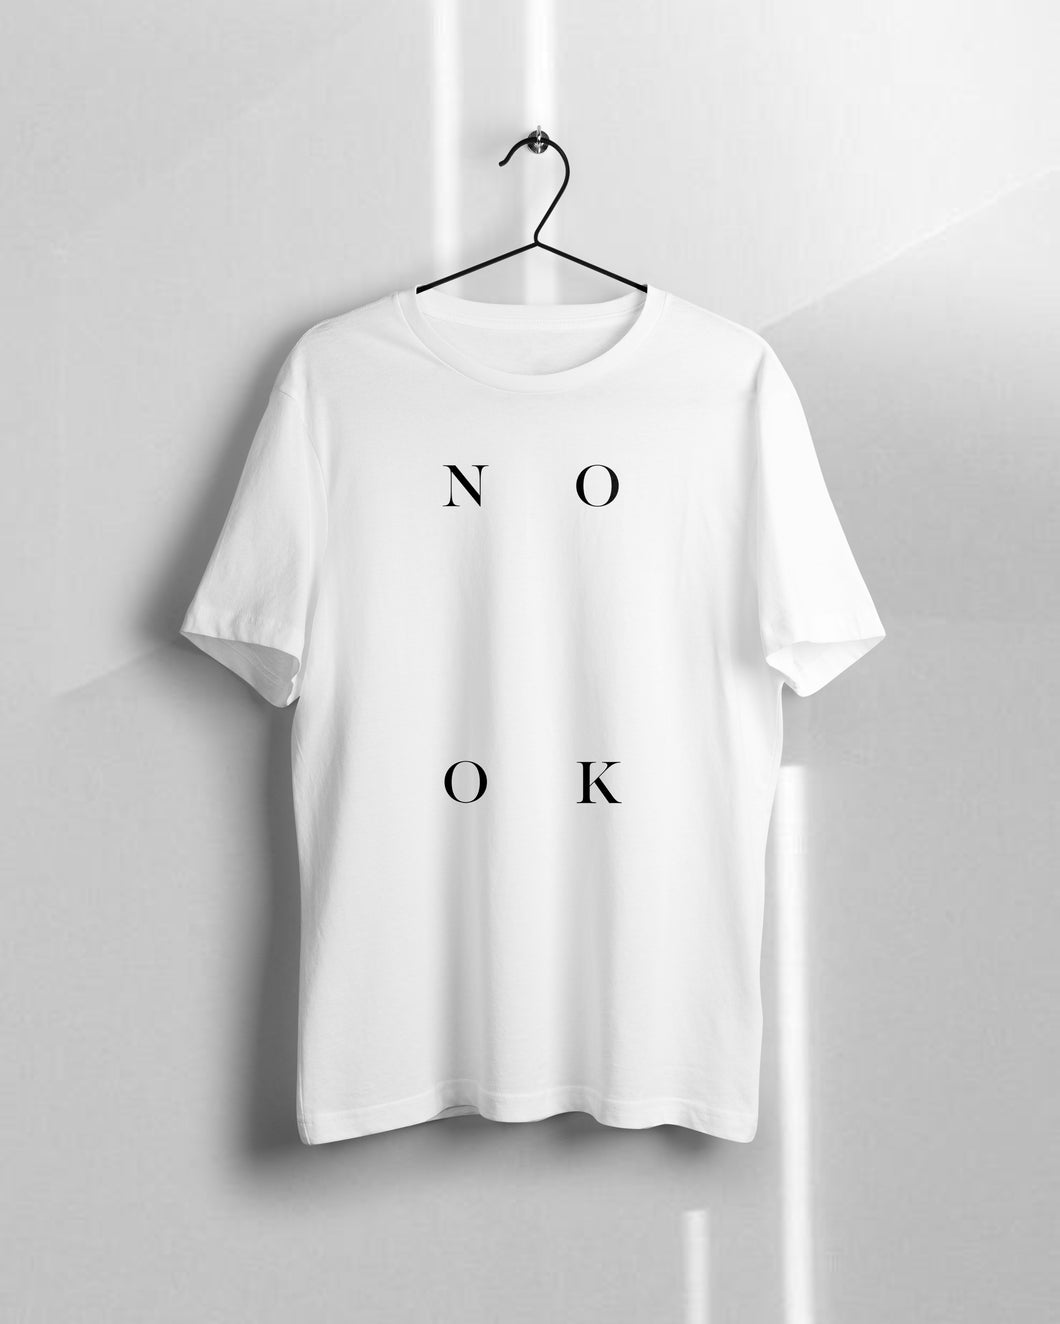 NO OK T-shirt - KILSHEE Co.